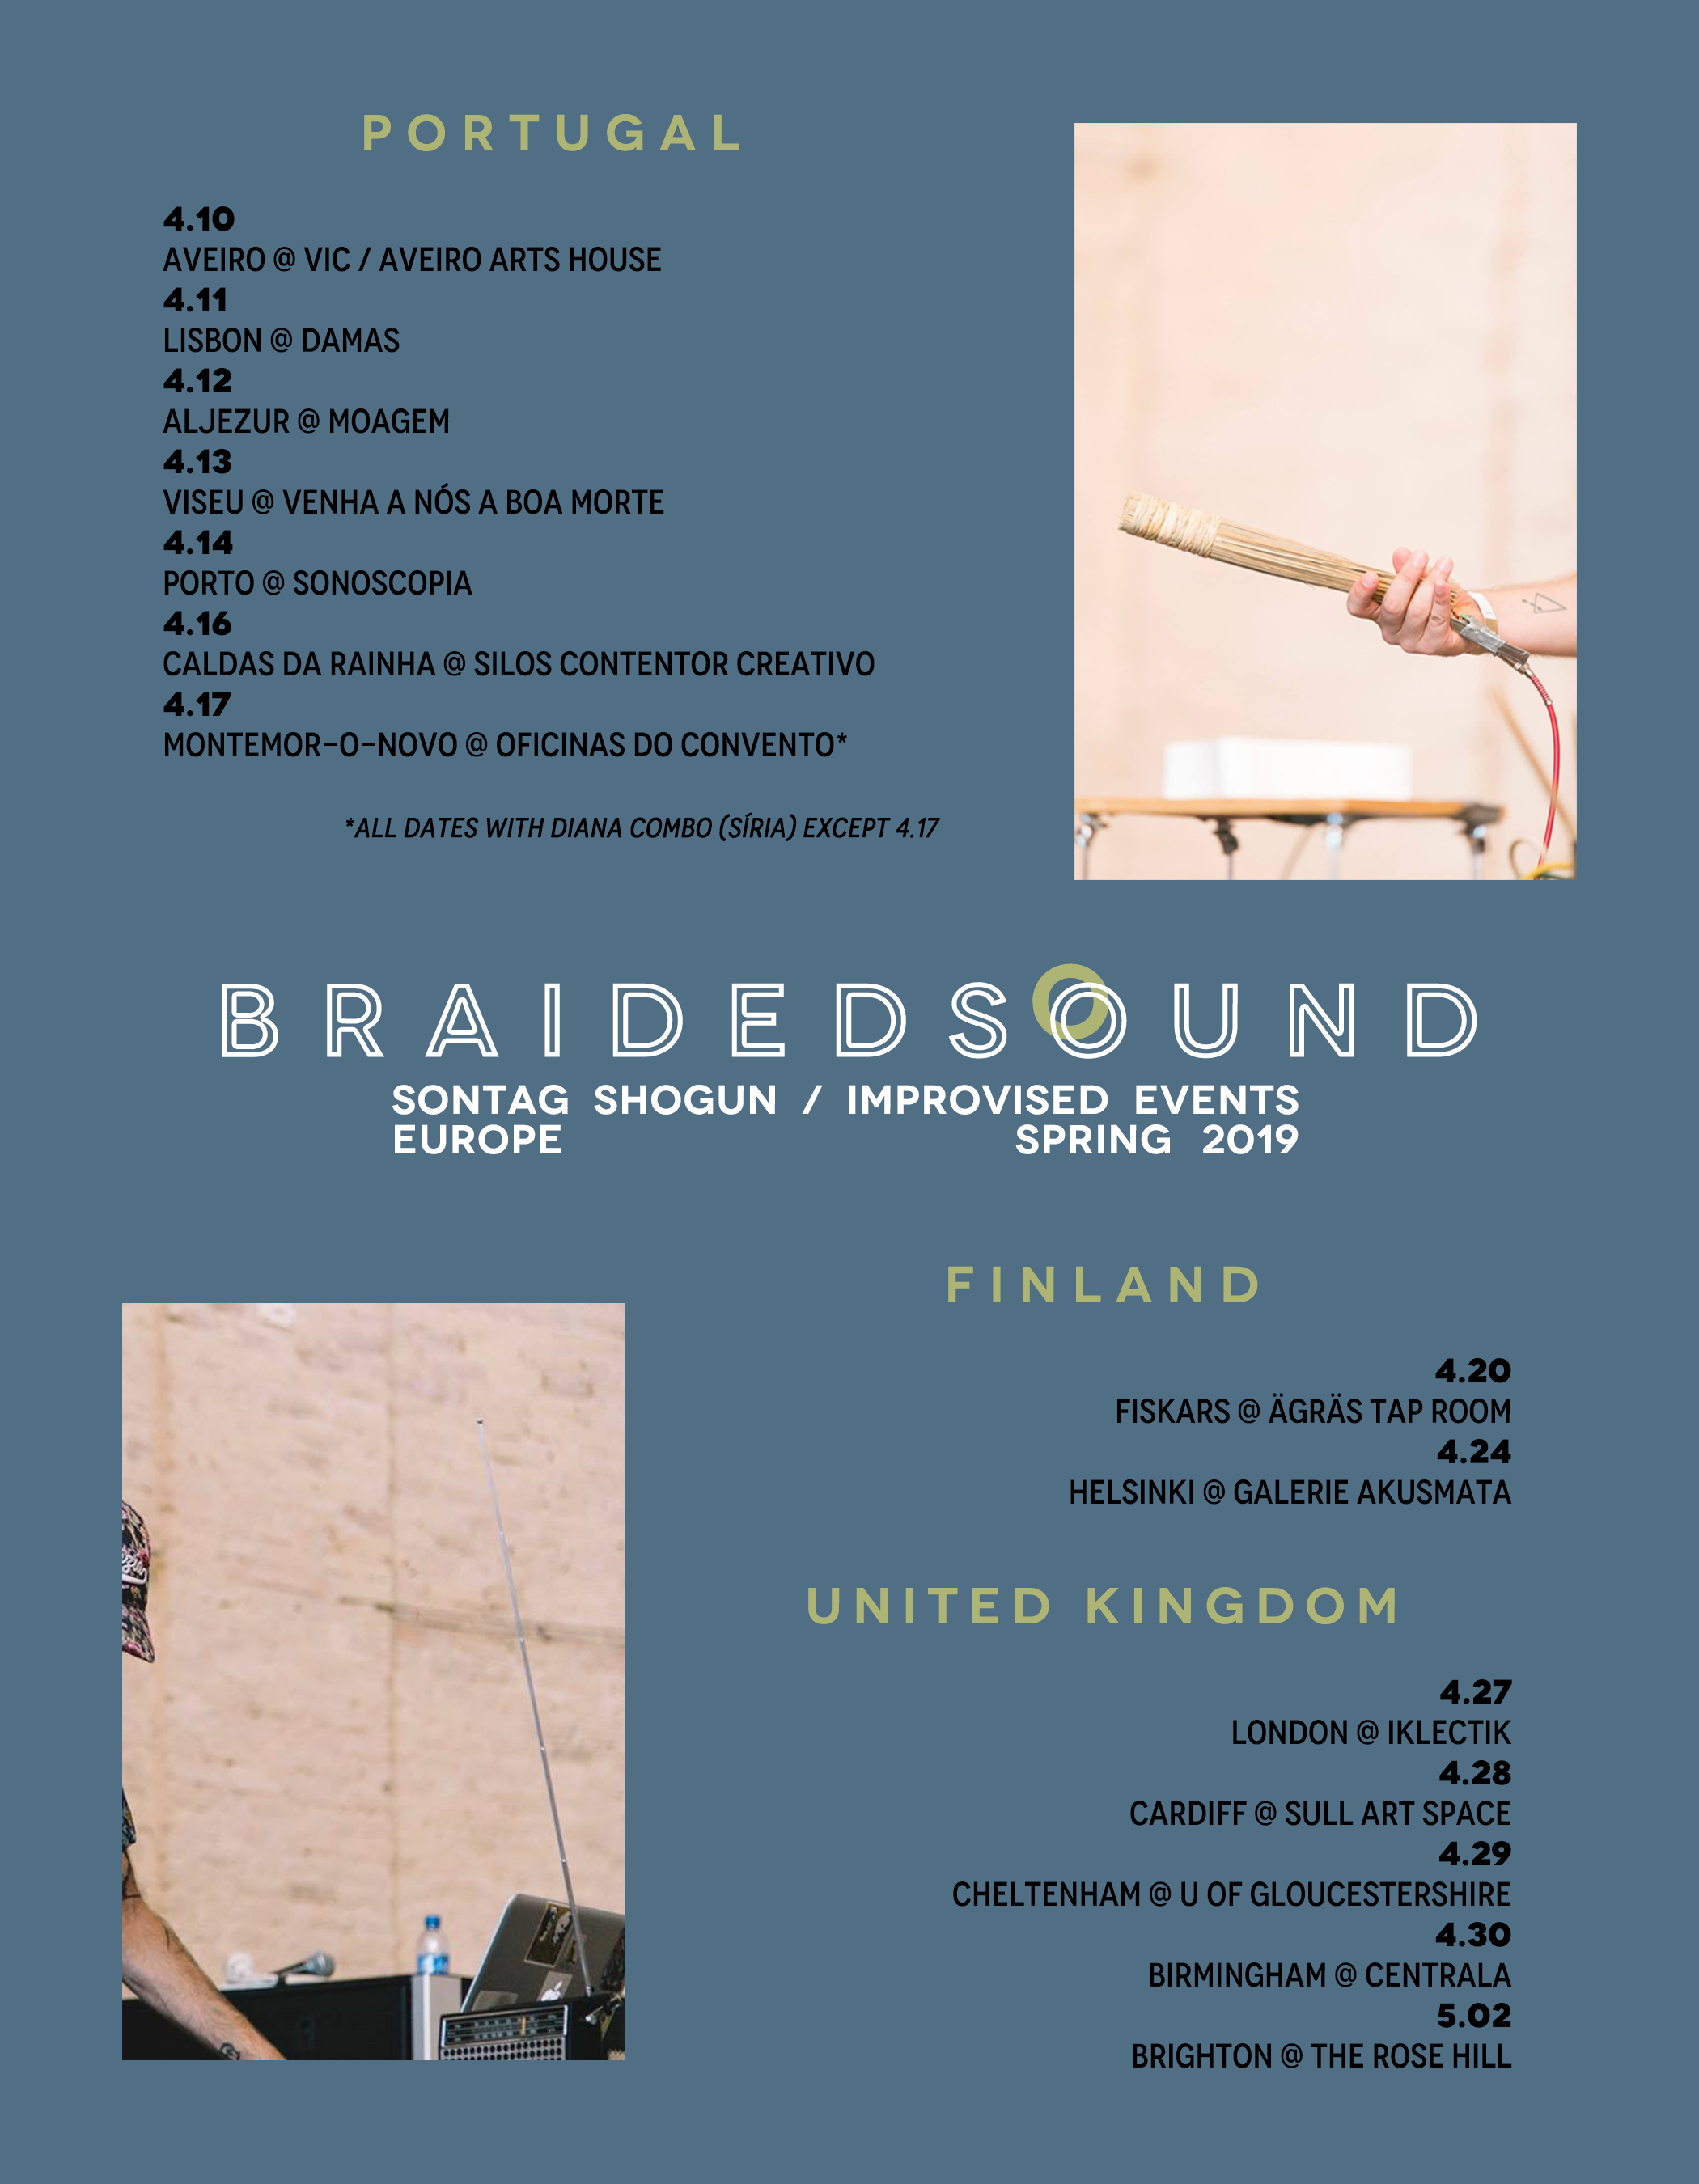 braidedsound europe 2019 dates.png